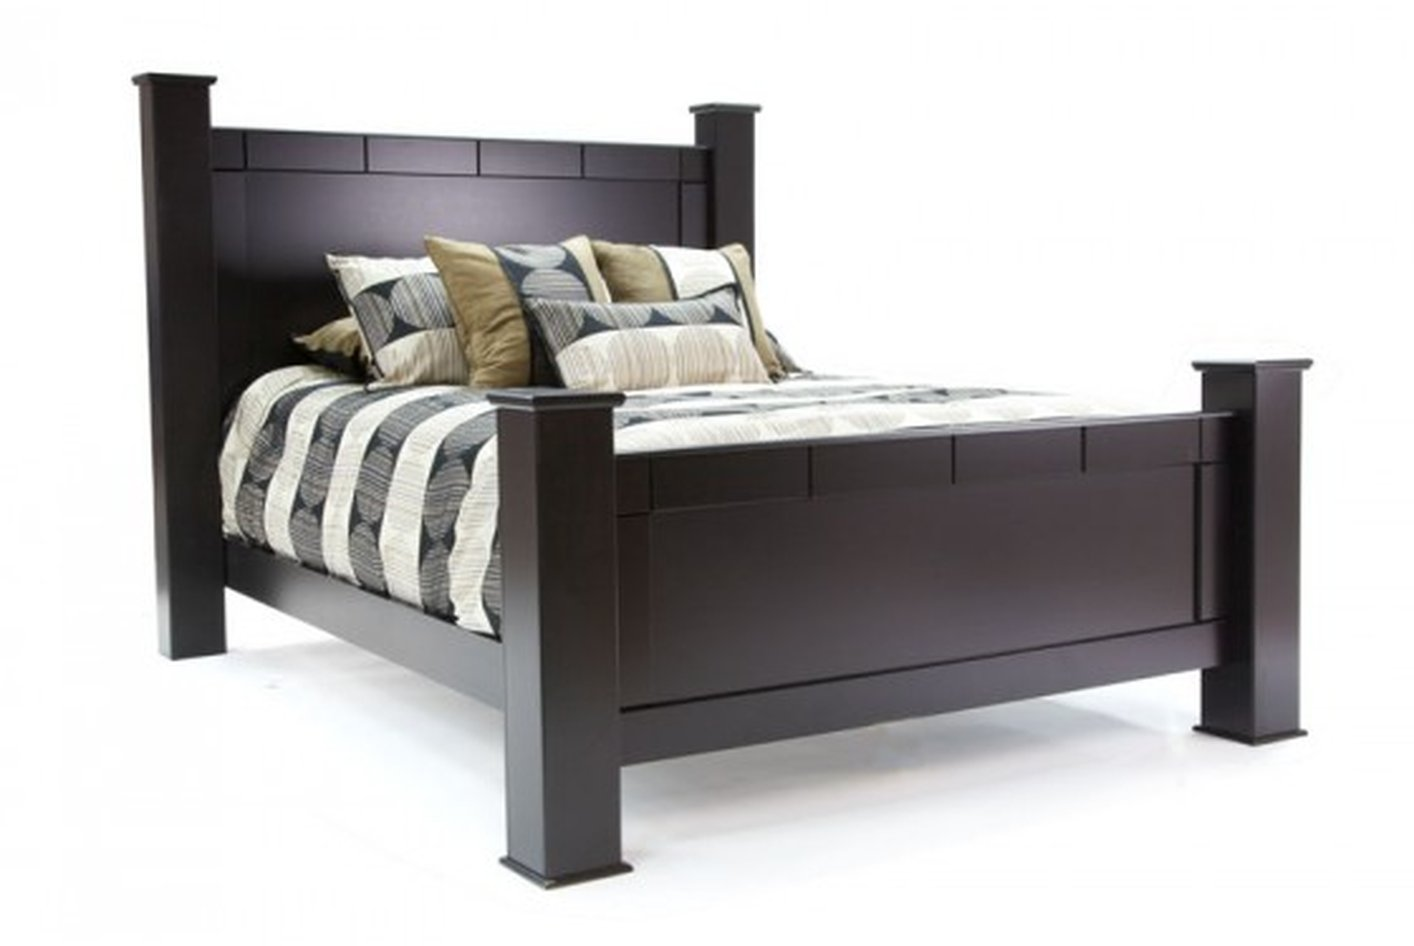 Sandberg elena 33412f 33412h 33462r black queen size wood bed steal a sofa furniture outlet Queen bed and mattress